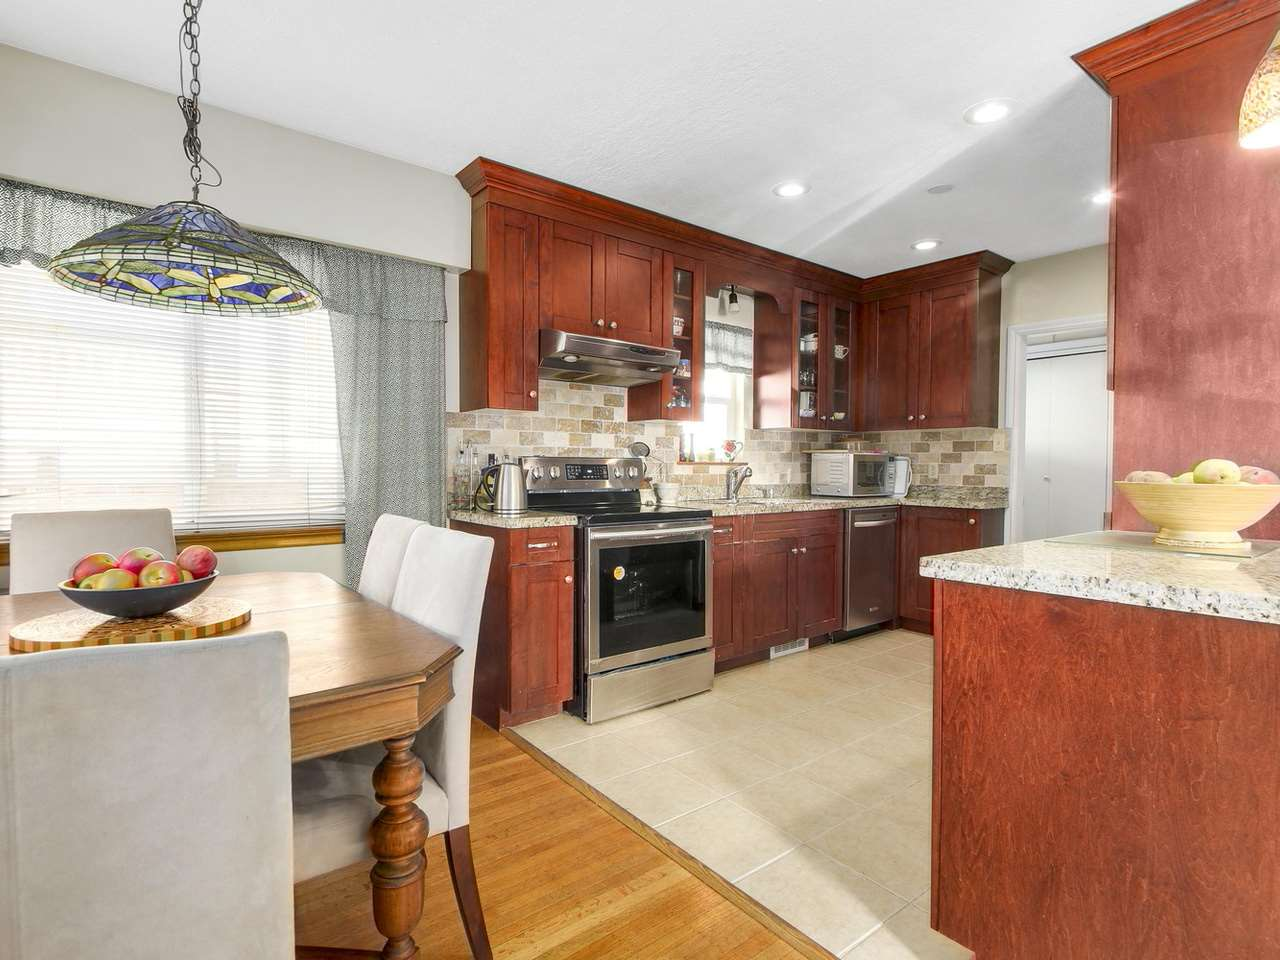 Photo 2: Photos: 1520 MACGOWAN Avenue in North Vancouver: Norgate House for sale : MLS® # R2137032